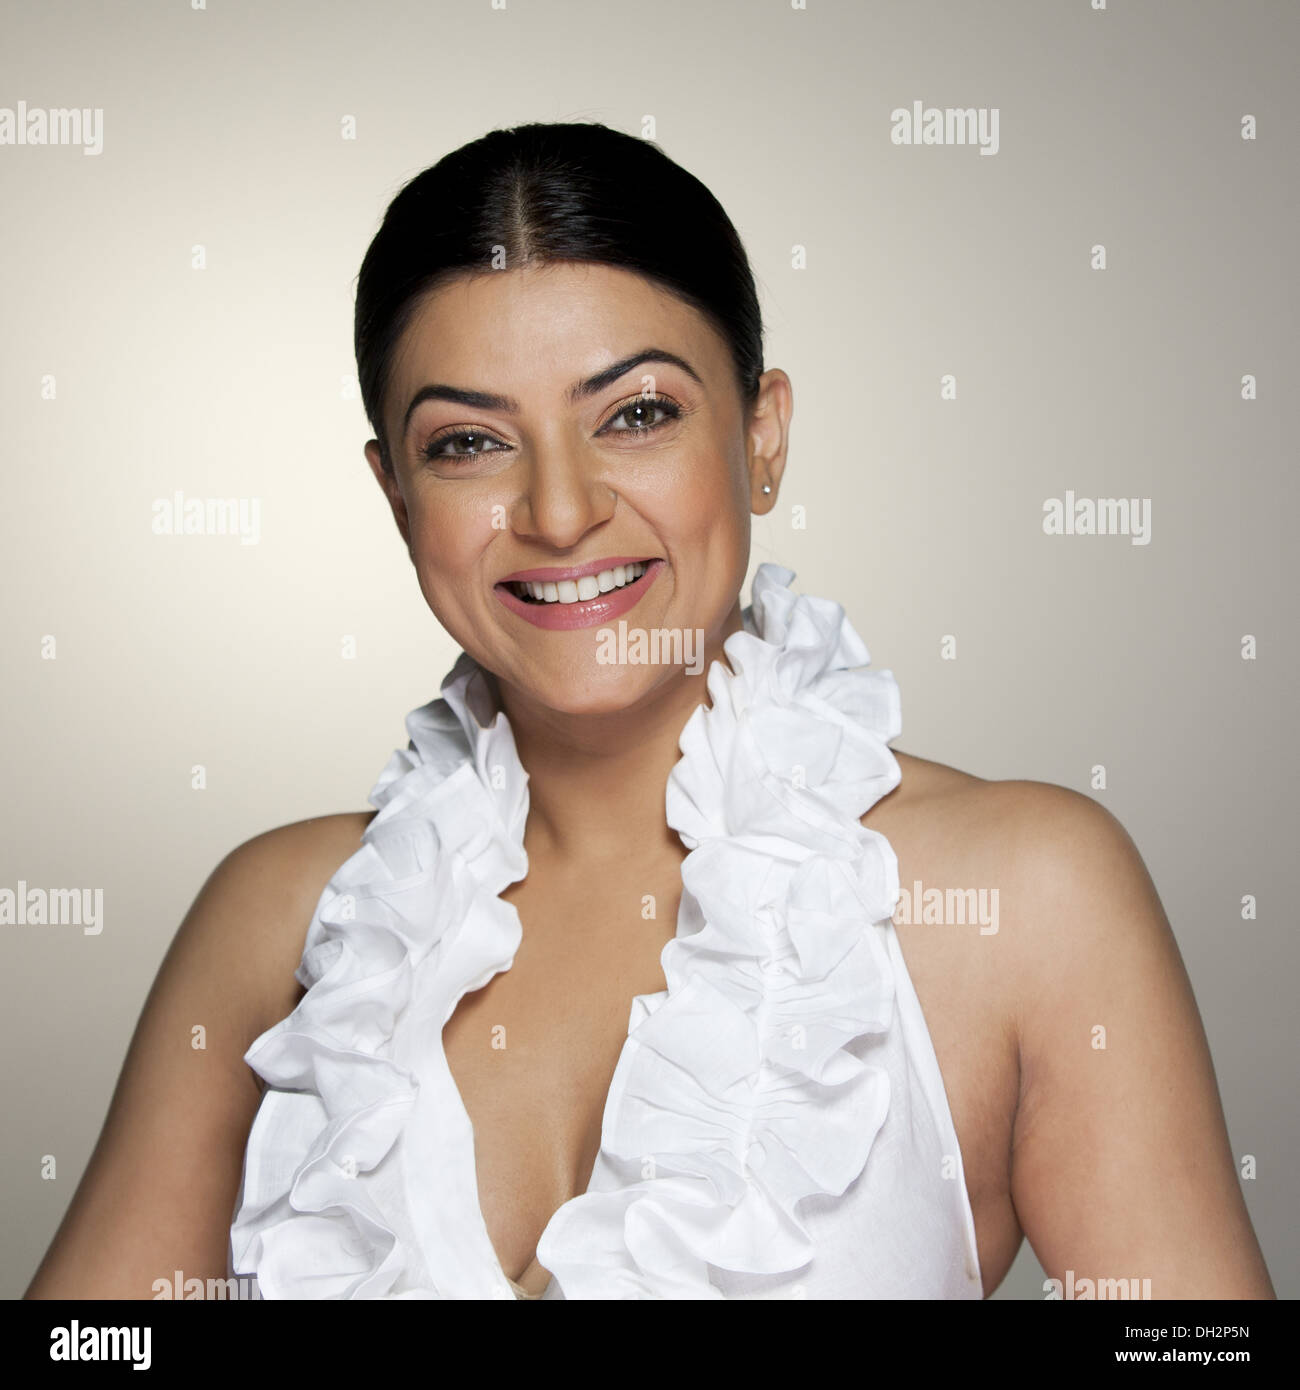 sushmita sen an indian actress, model and beauty queen. she won the